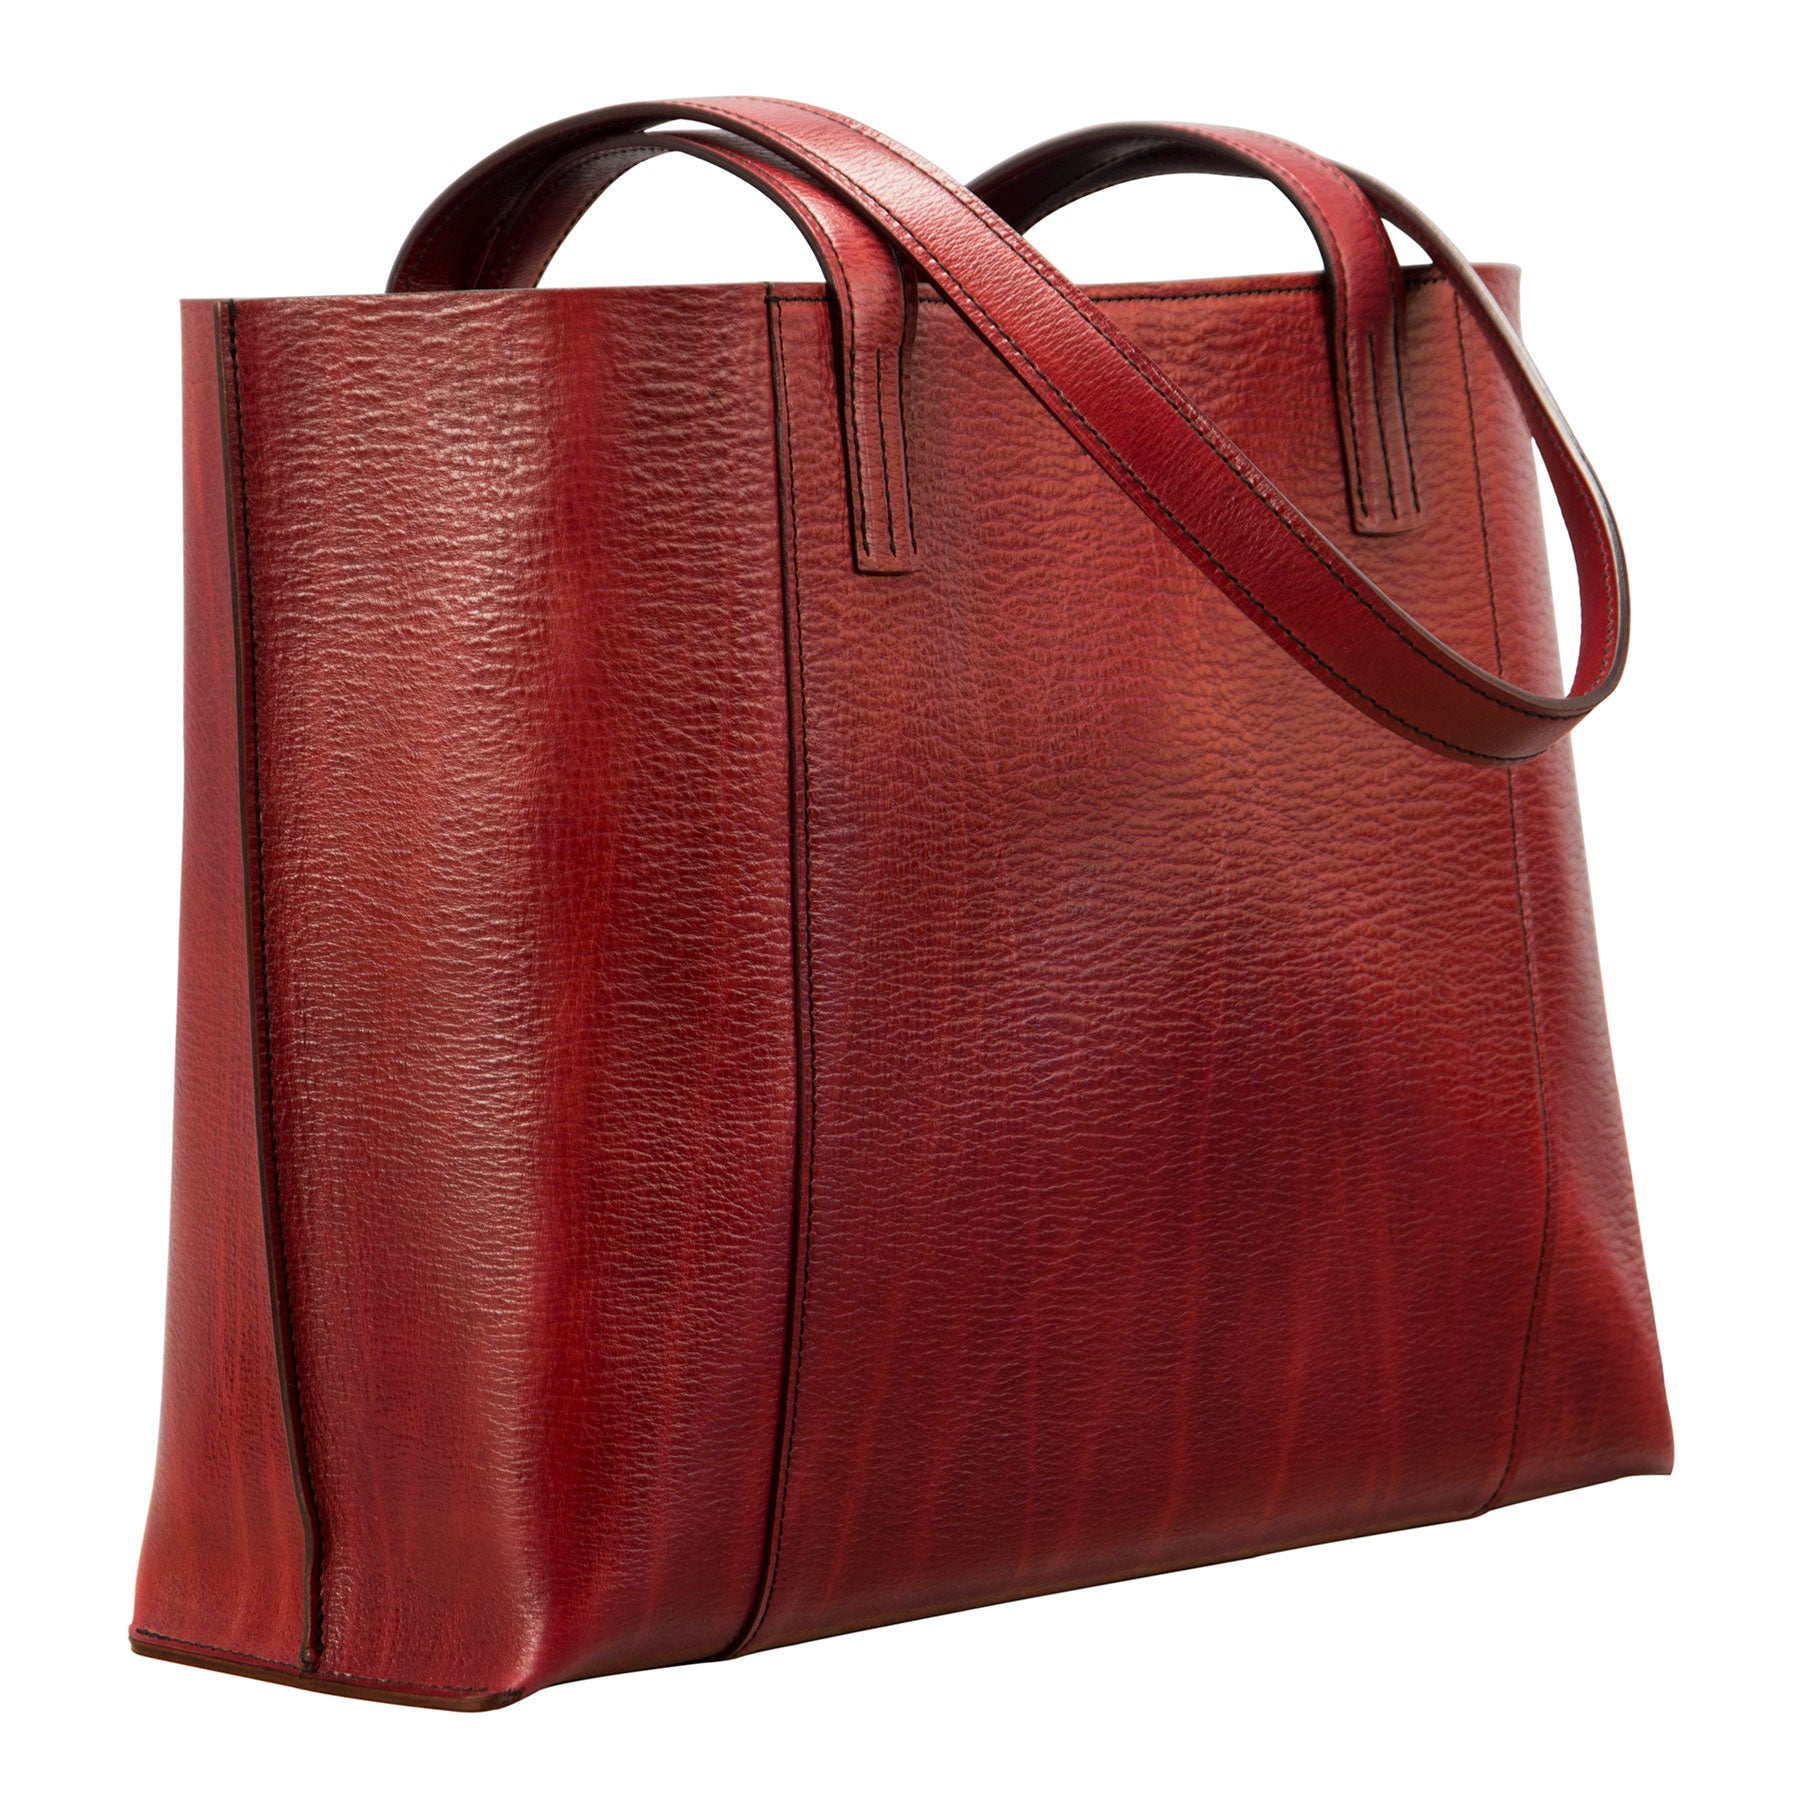 Ellie Tote: Hand-Grained, Hand-Colored Leather